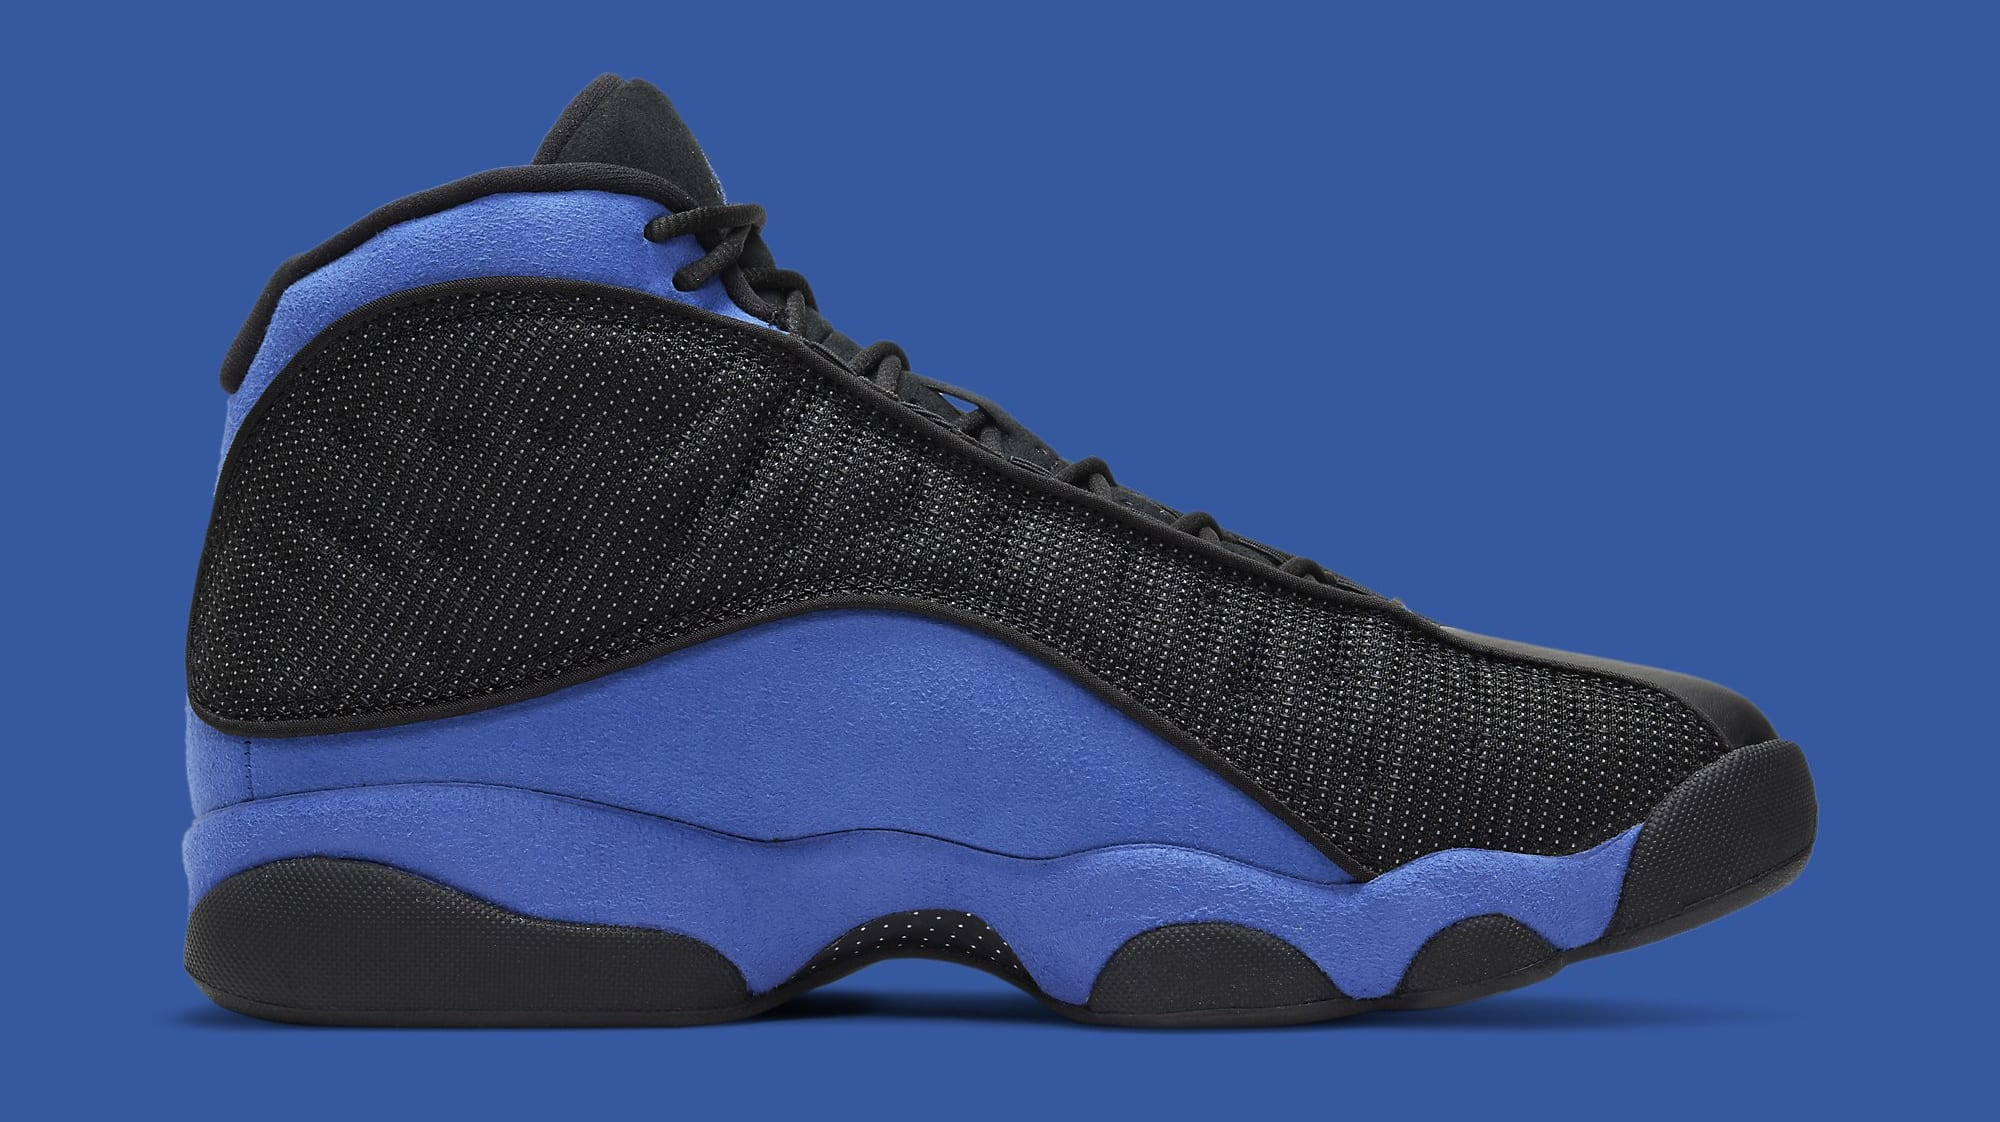 Air Jordan 13 Retro 'Hyper Royal' 414571-040 Medial